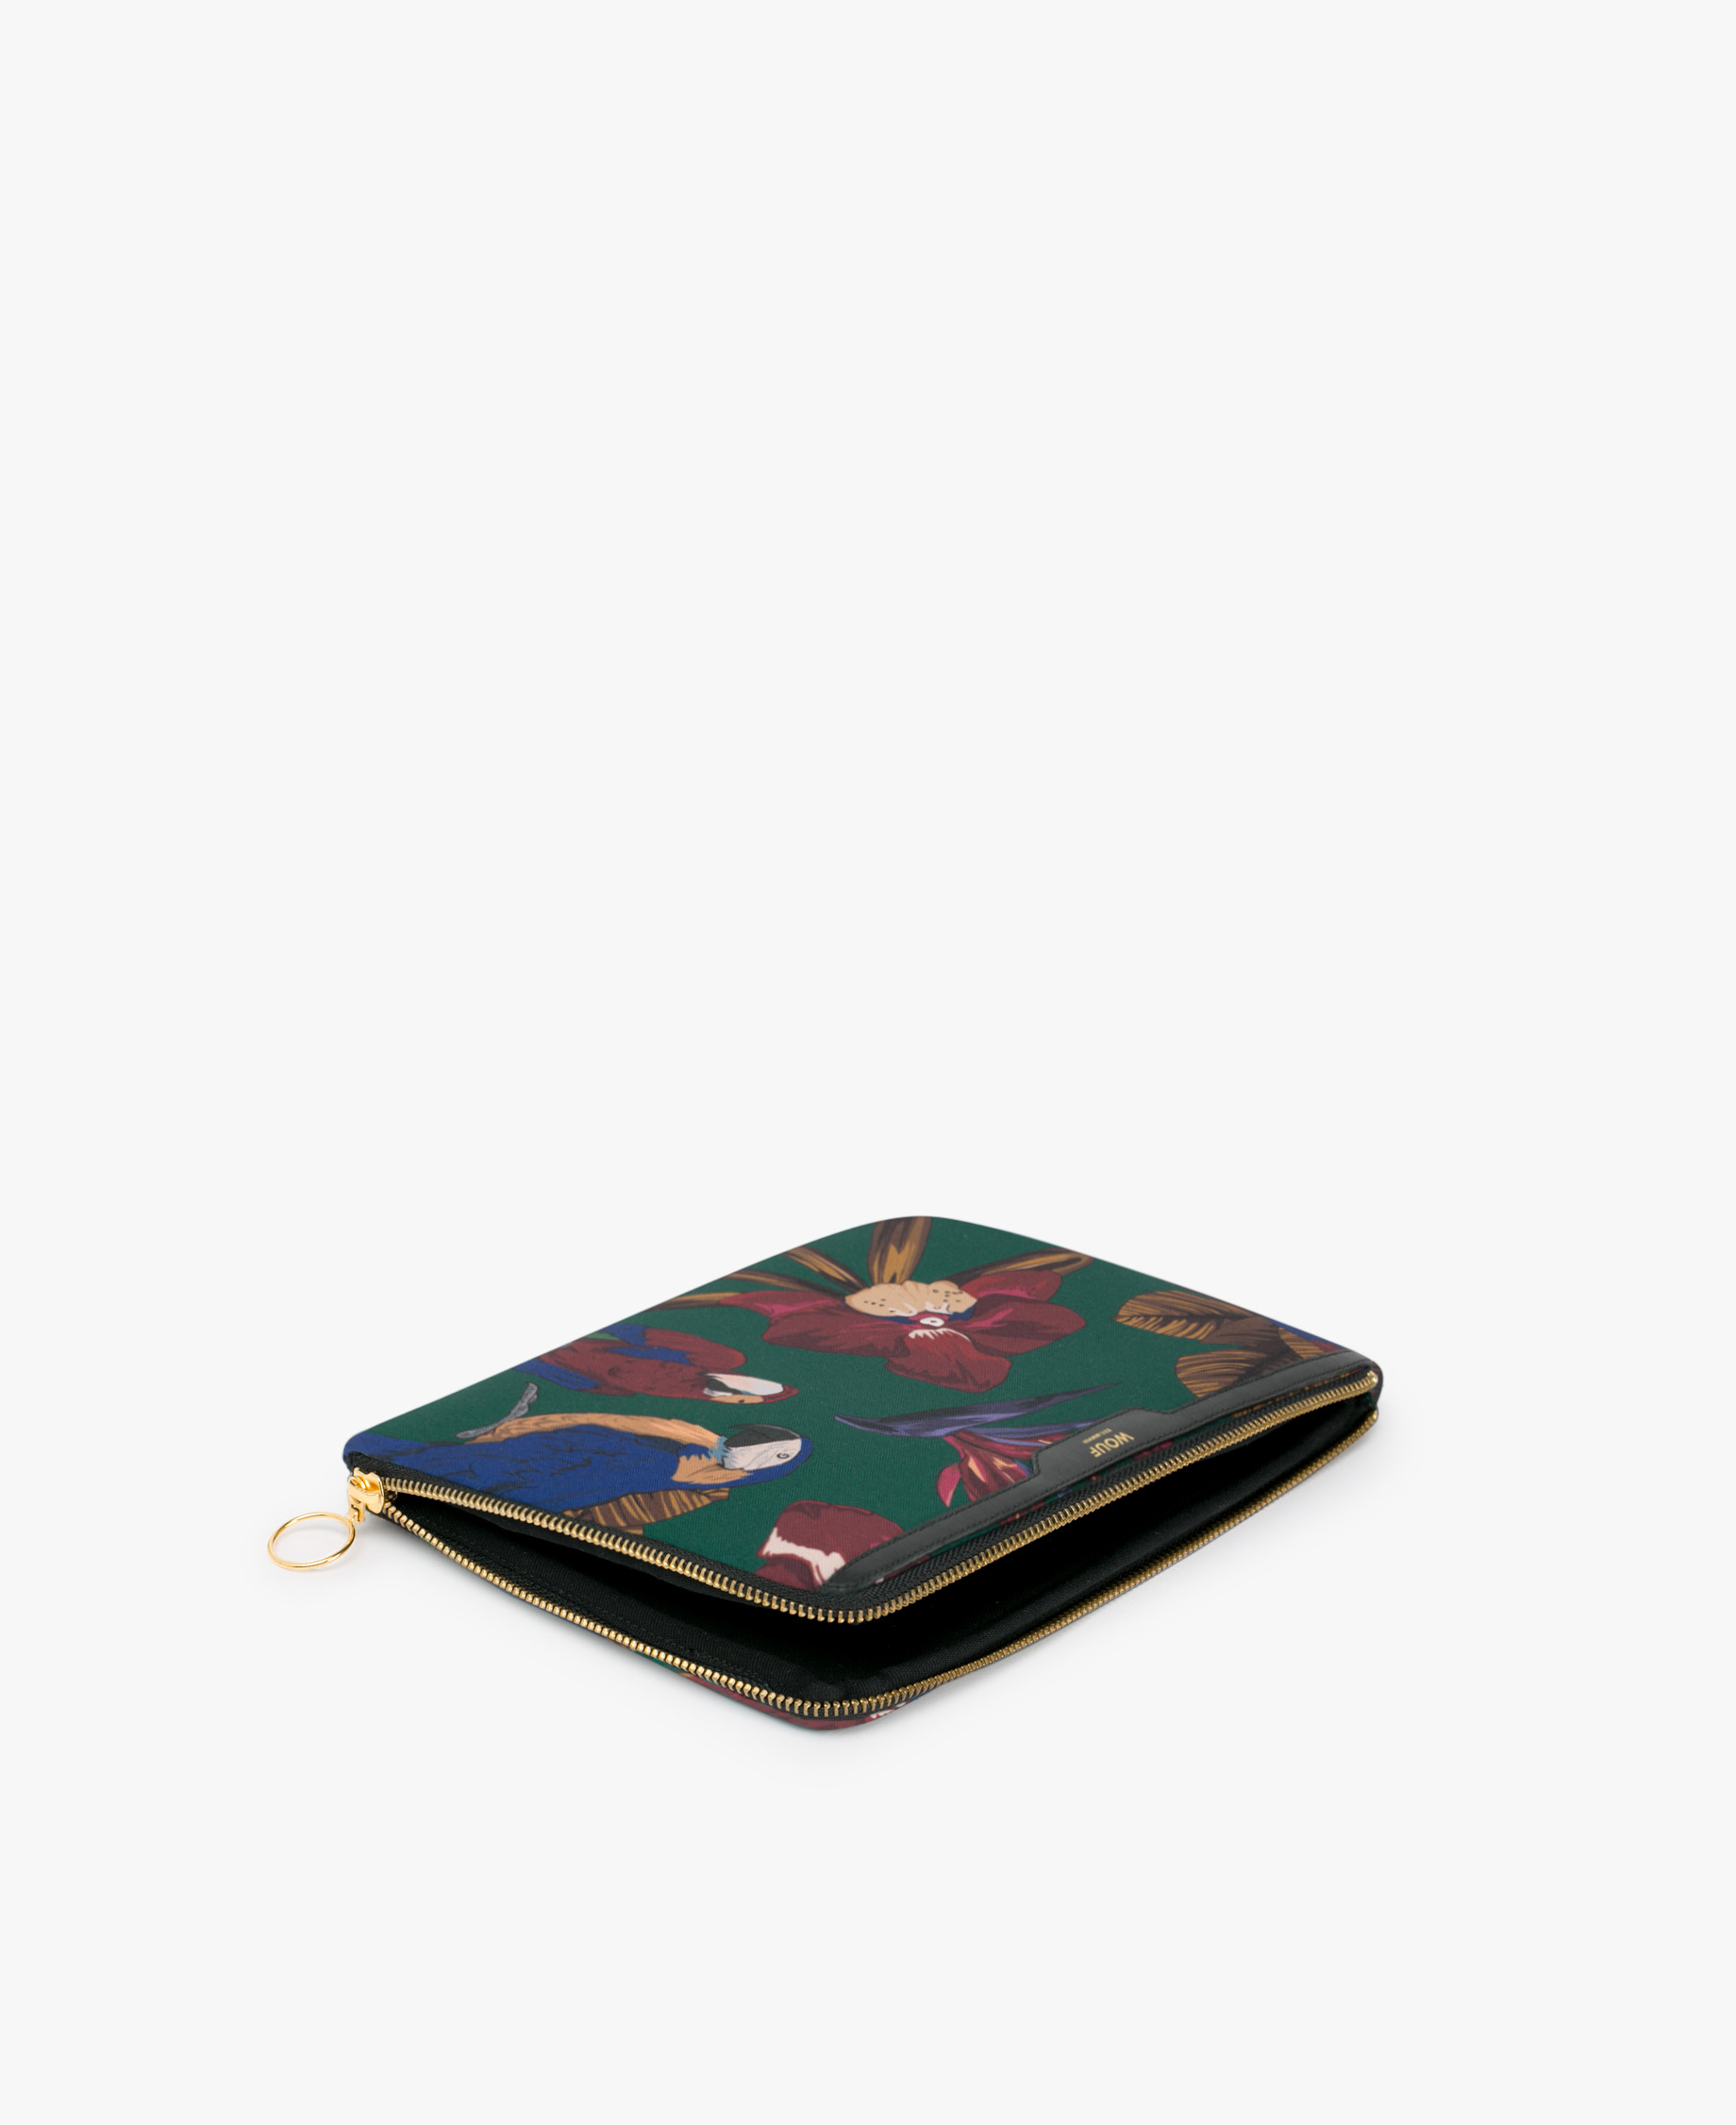 green ipad case with flowers